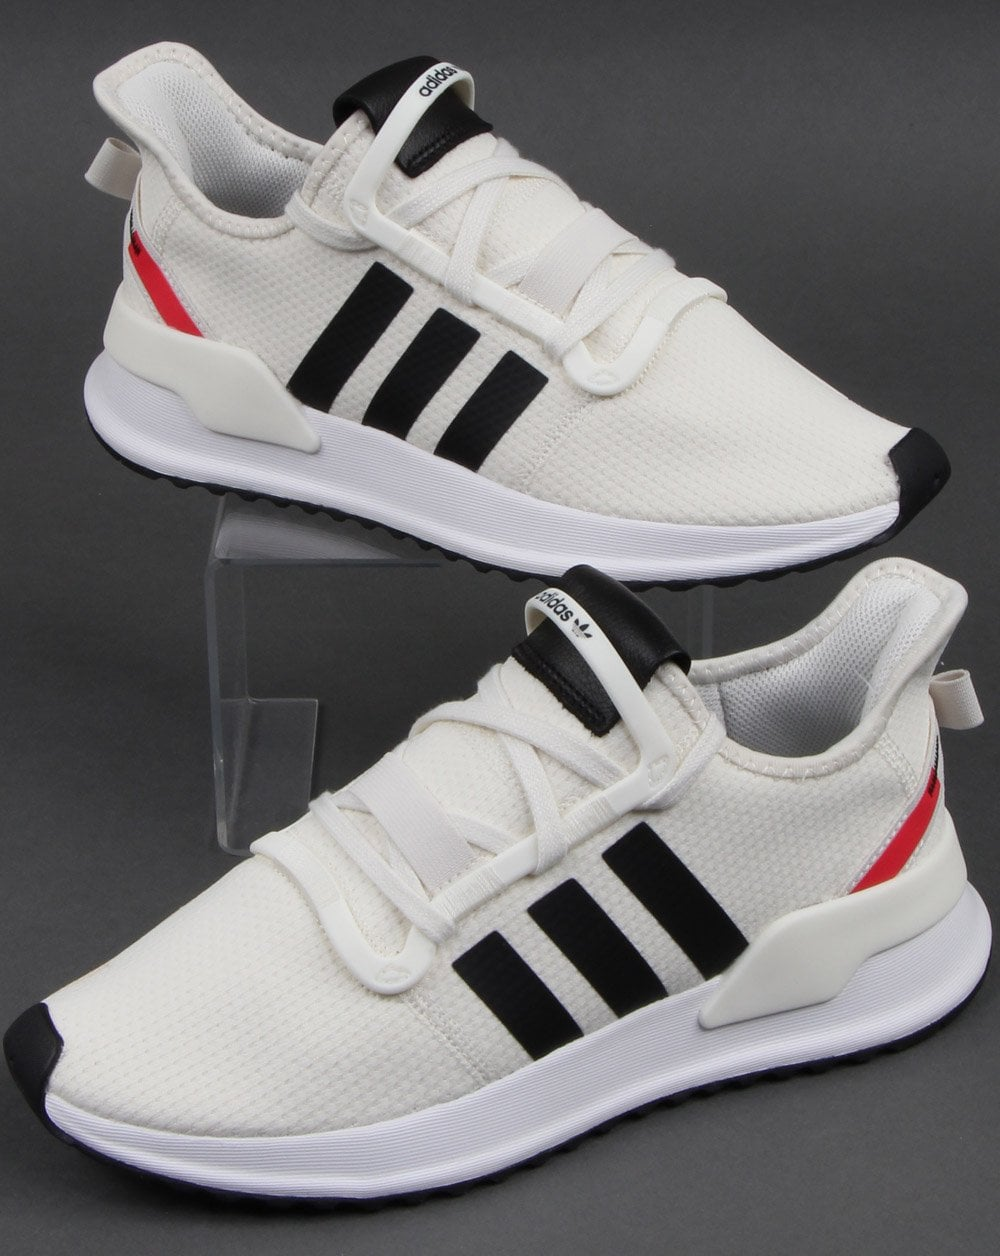 hot sales on feet images of hot sales Adidas U_path Run Trainers Off White/black/shock Red